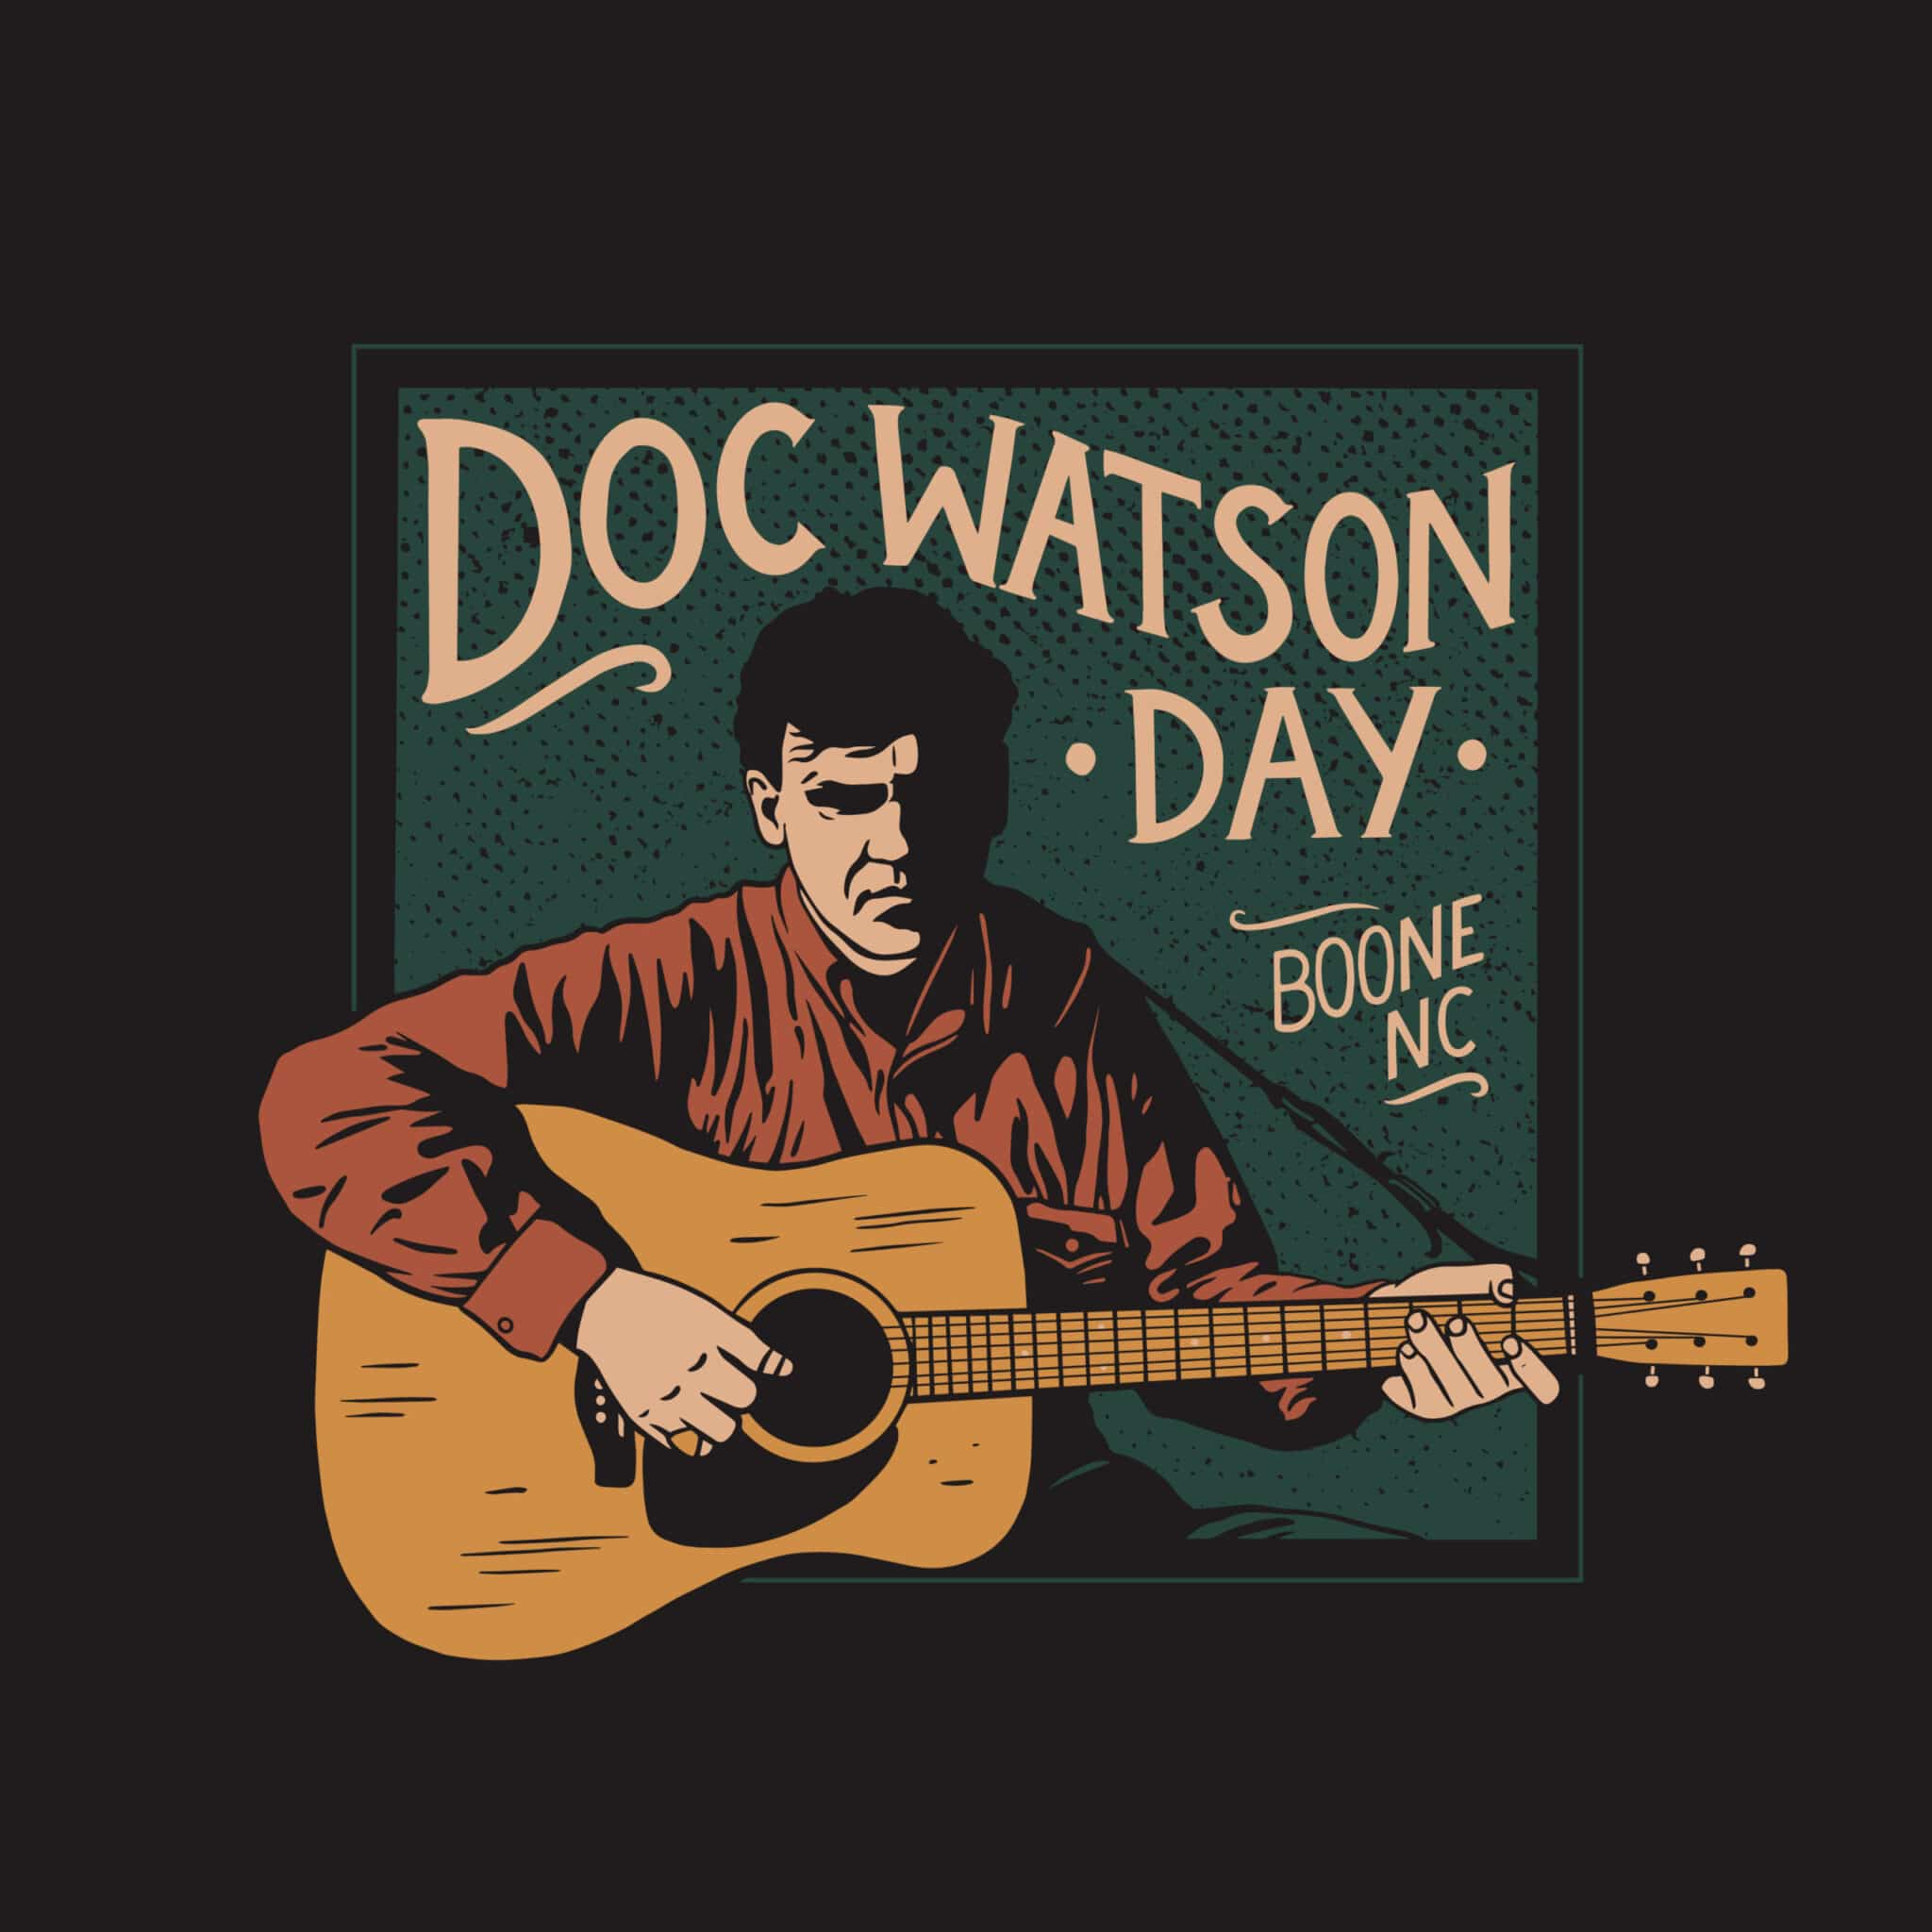 Doc Watson Day 2021 to be held Friday June 18